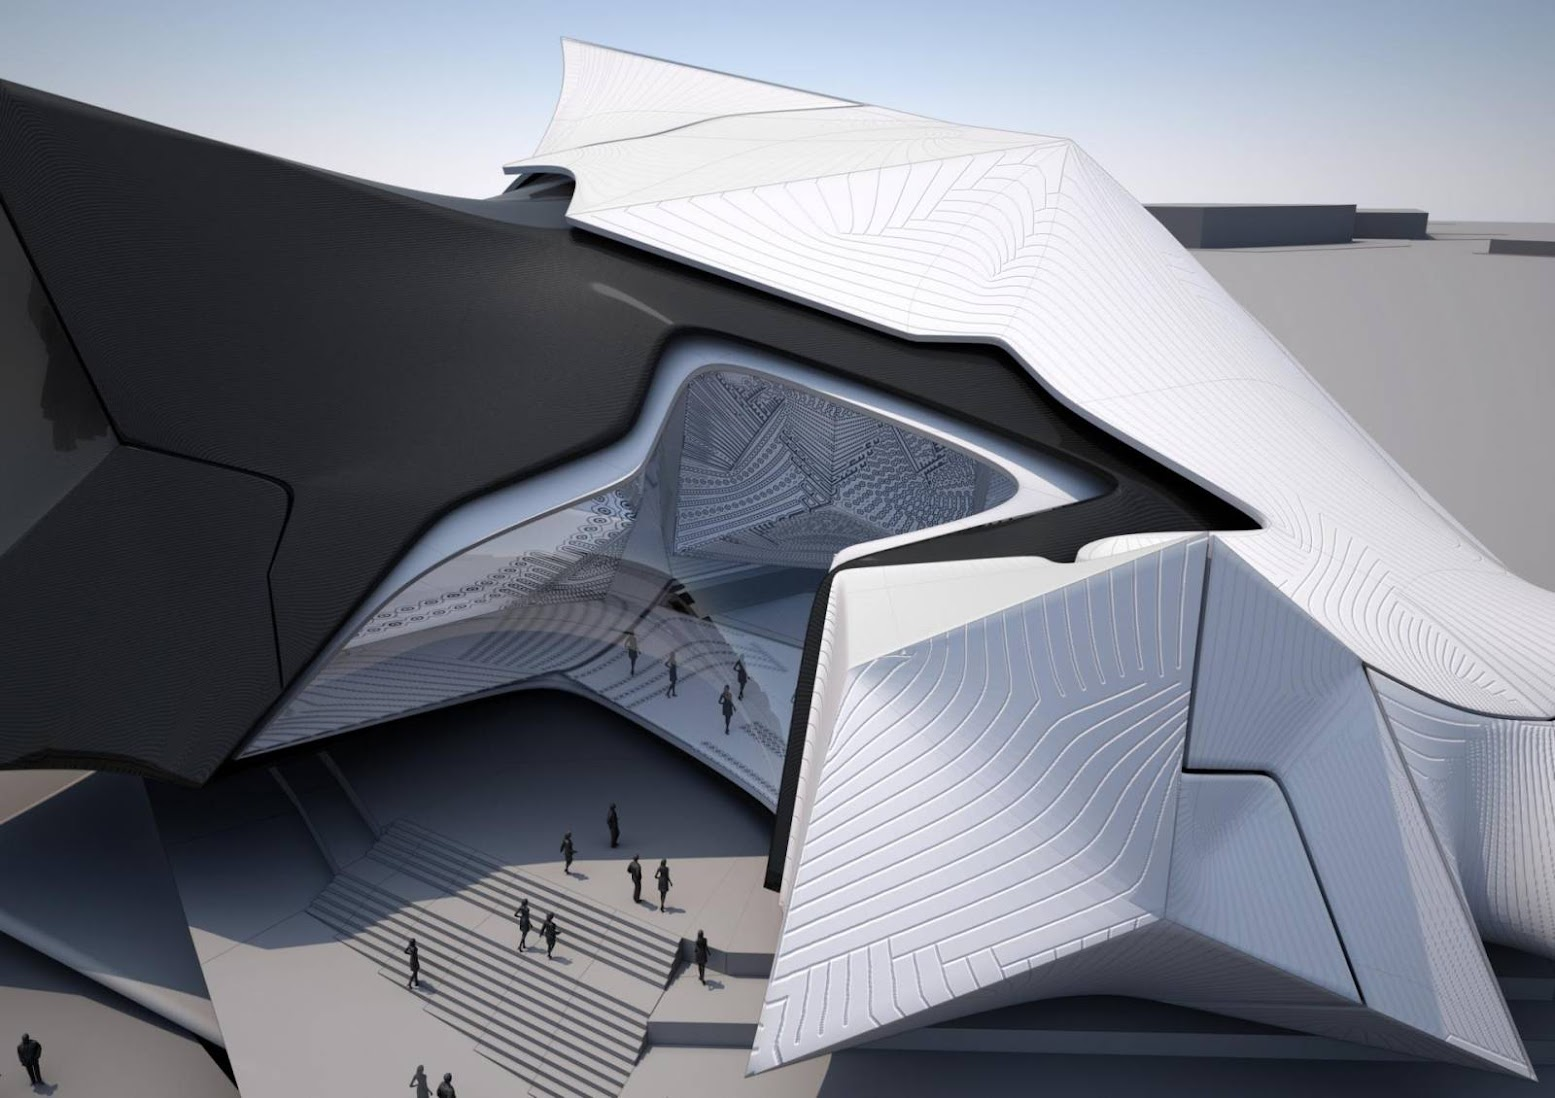 Sofia, Bulgaria: [COLLIDER ACTIVITY CENTER BY TOM WISCOMBE DESIGN]